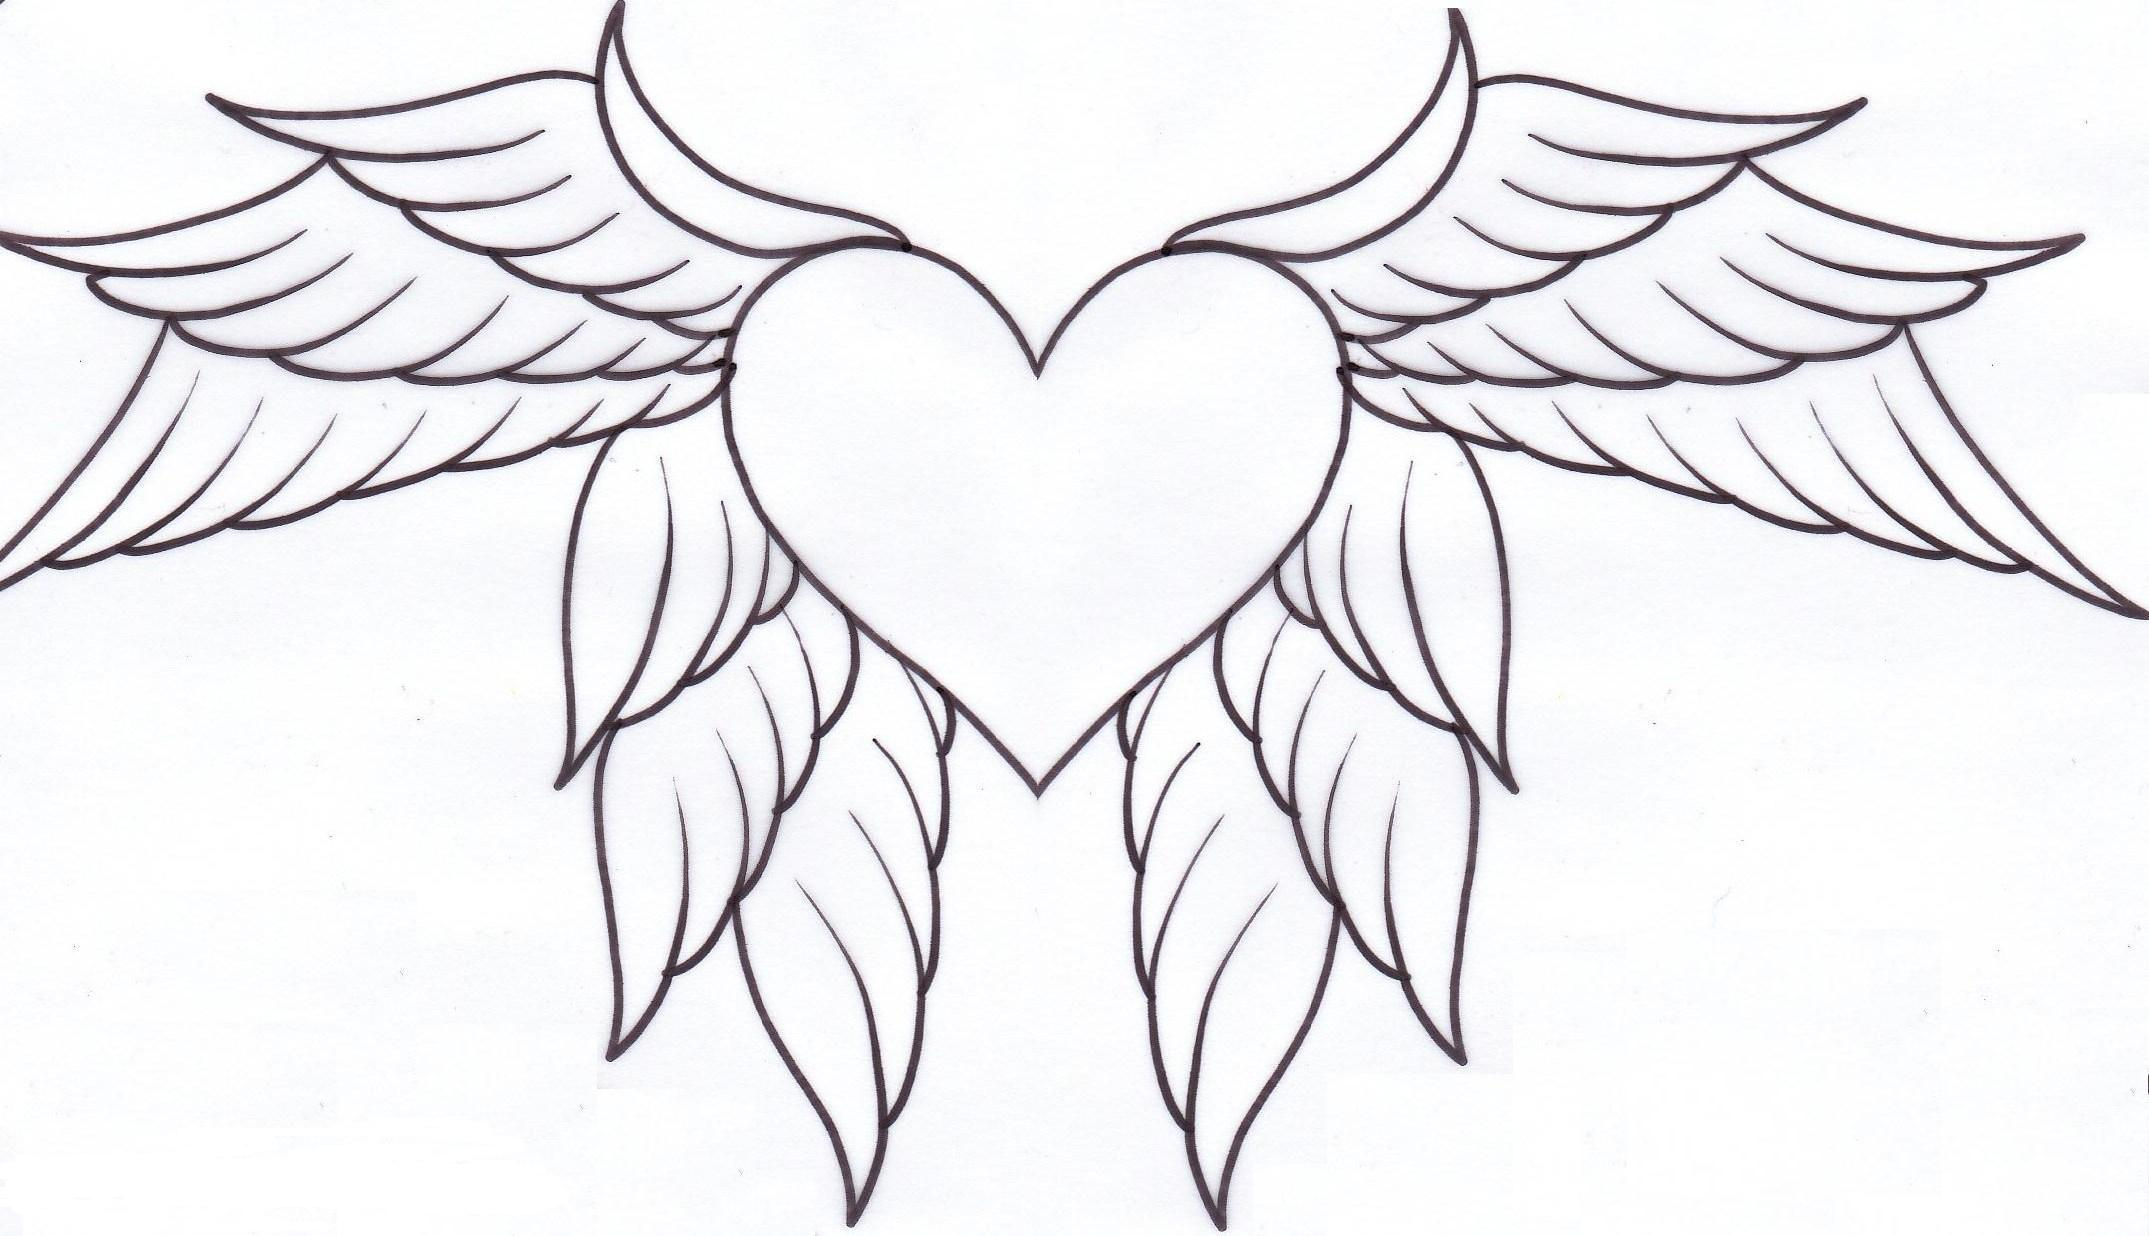 Adult Cute Heart With Wings Coloring Pages Gallery Images beauty hearts with wings coloring pages az heart page gallery images